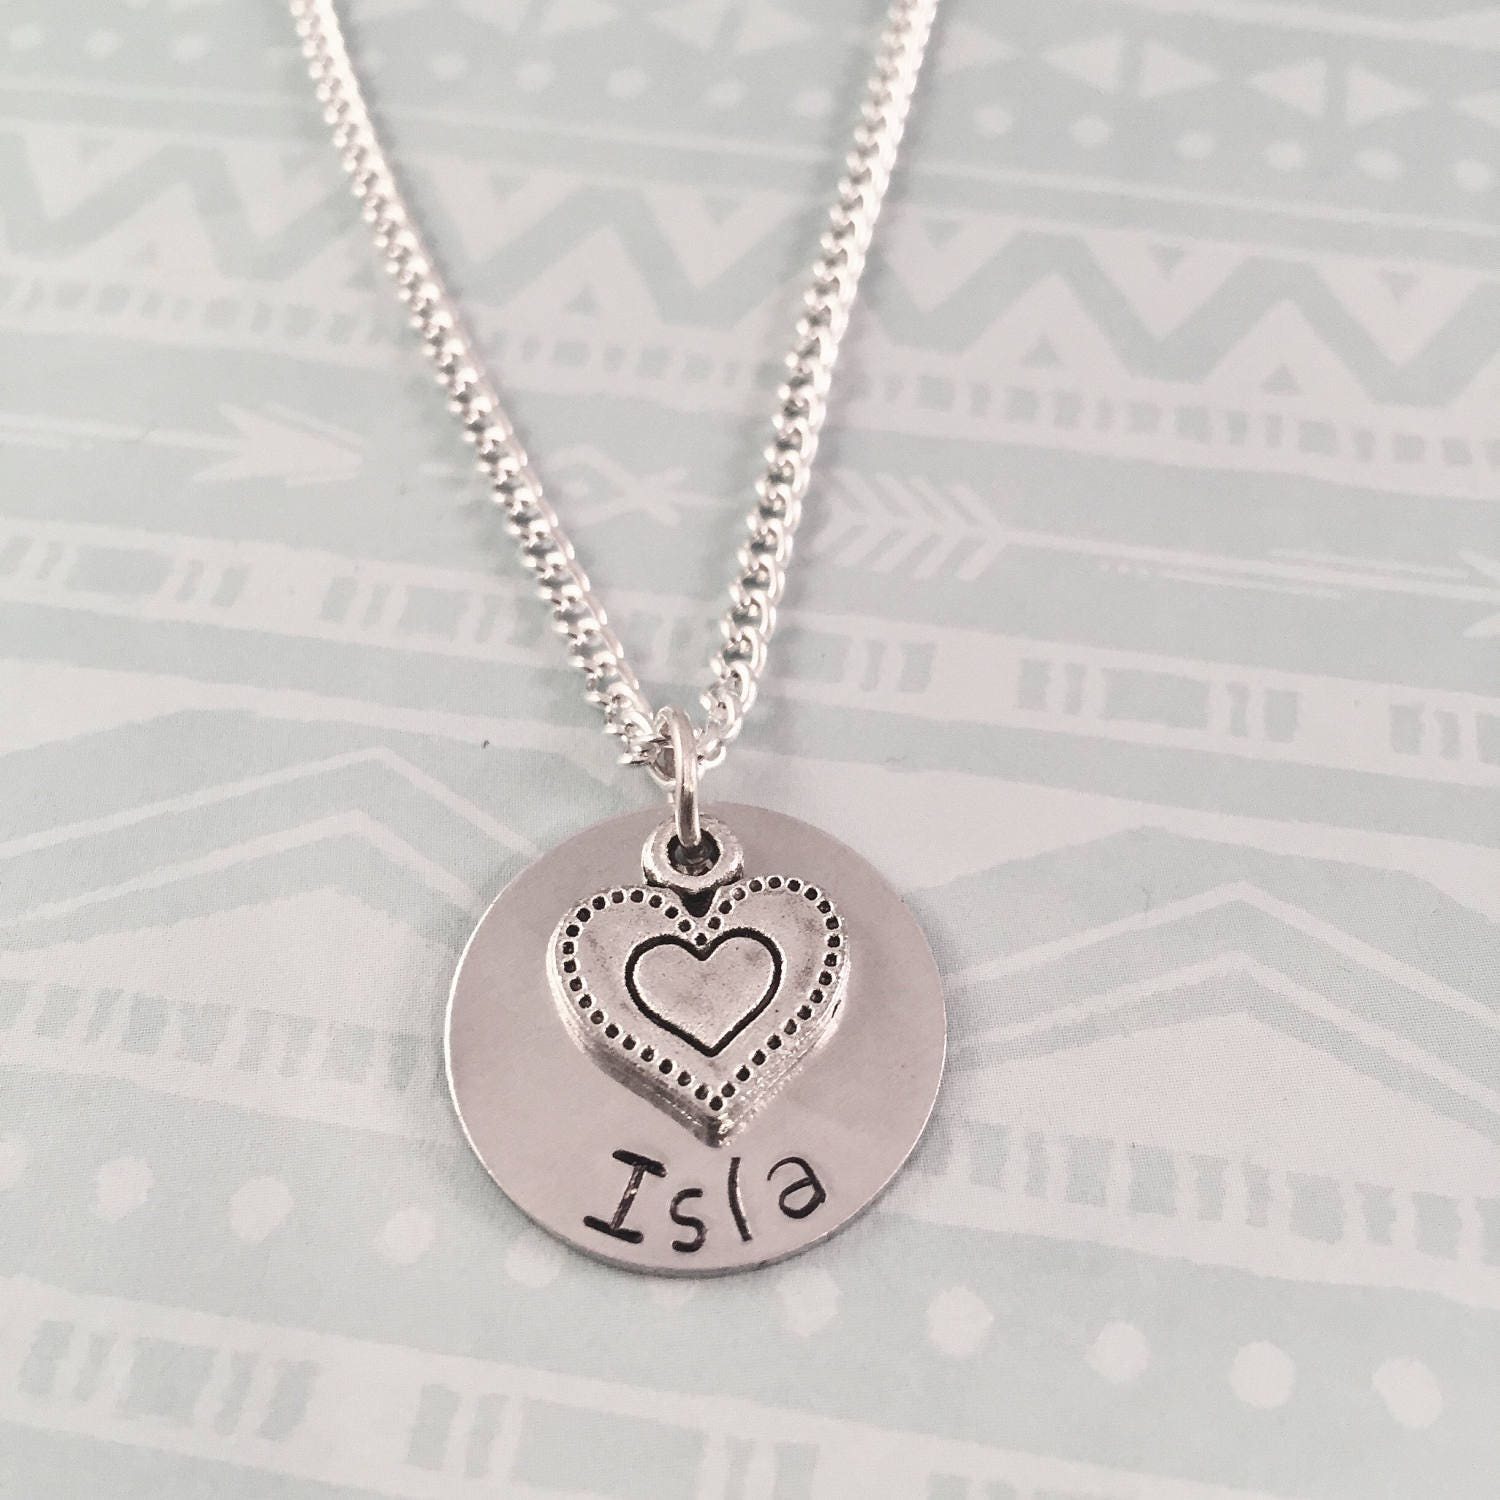 name necklace personalized heart necklace mothers necklace. Black Bedroom Furniture Sets. Home Design Ideas